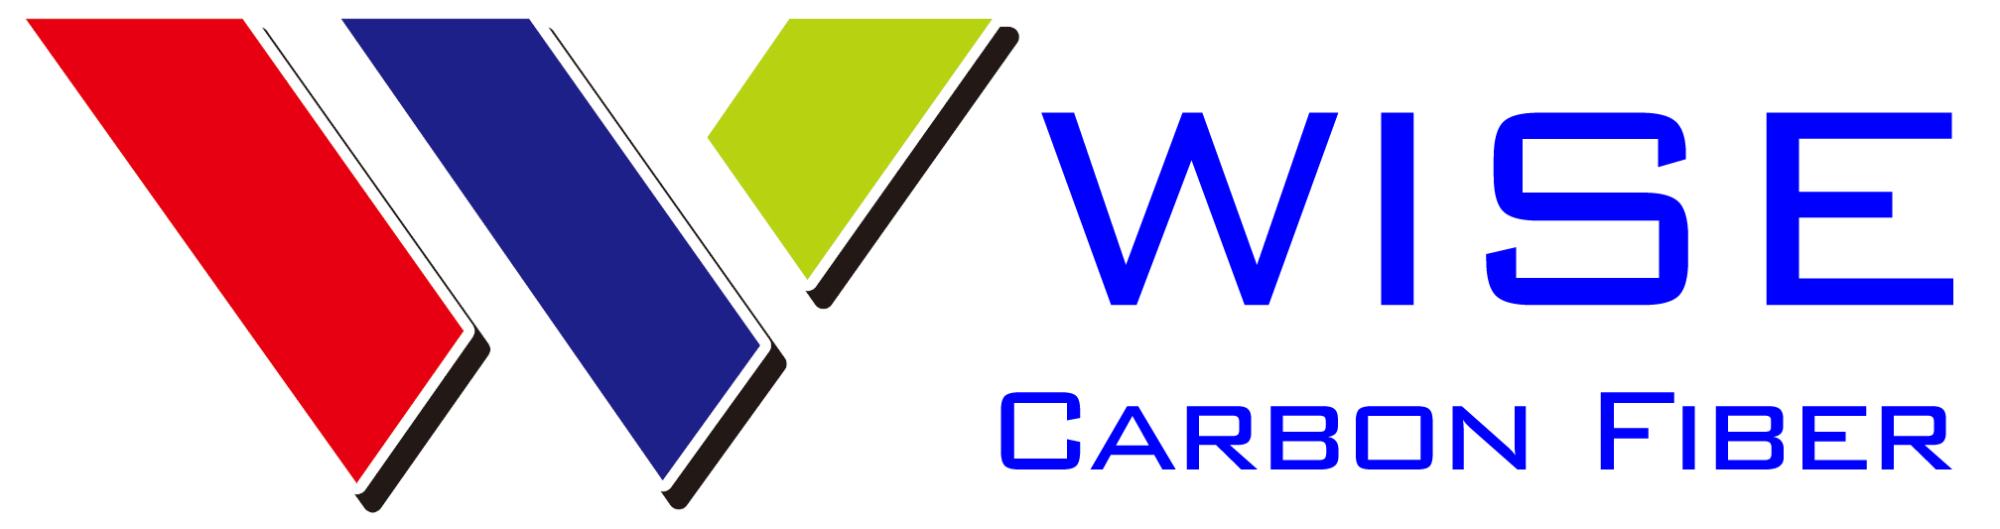 Guangzhou Wise Carbon Fiber Products Co., Ltd.